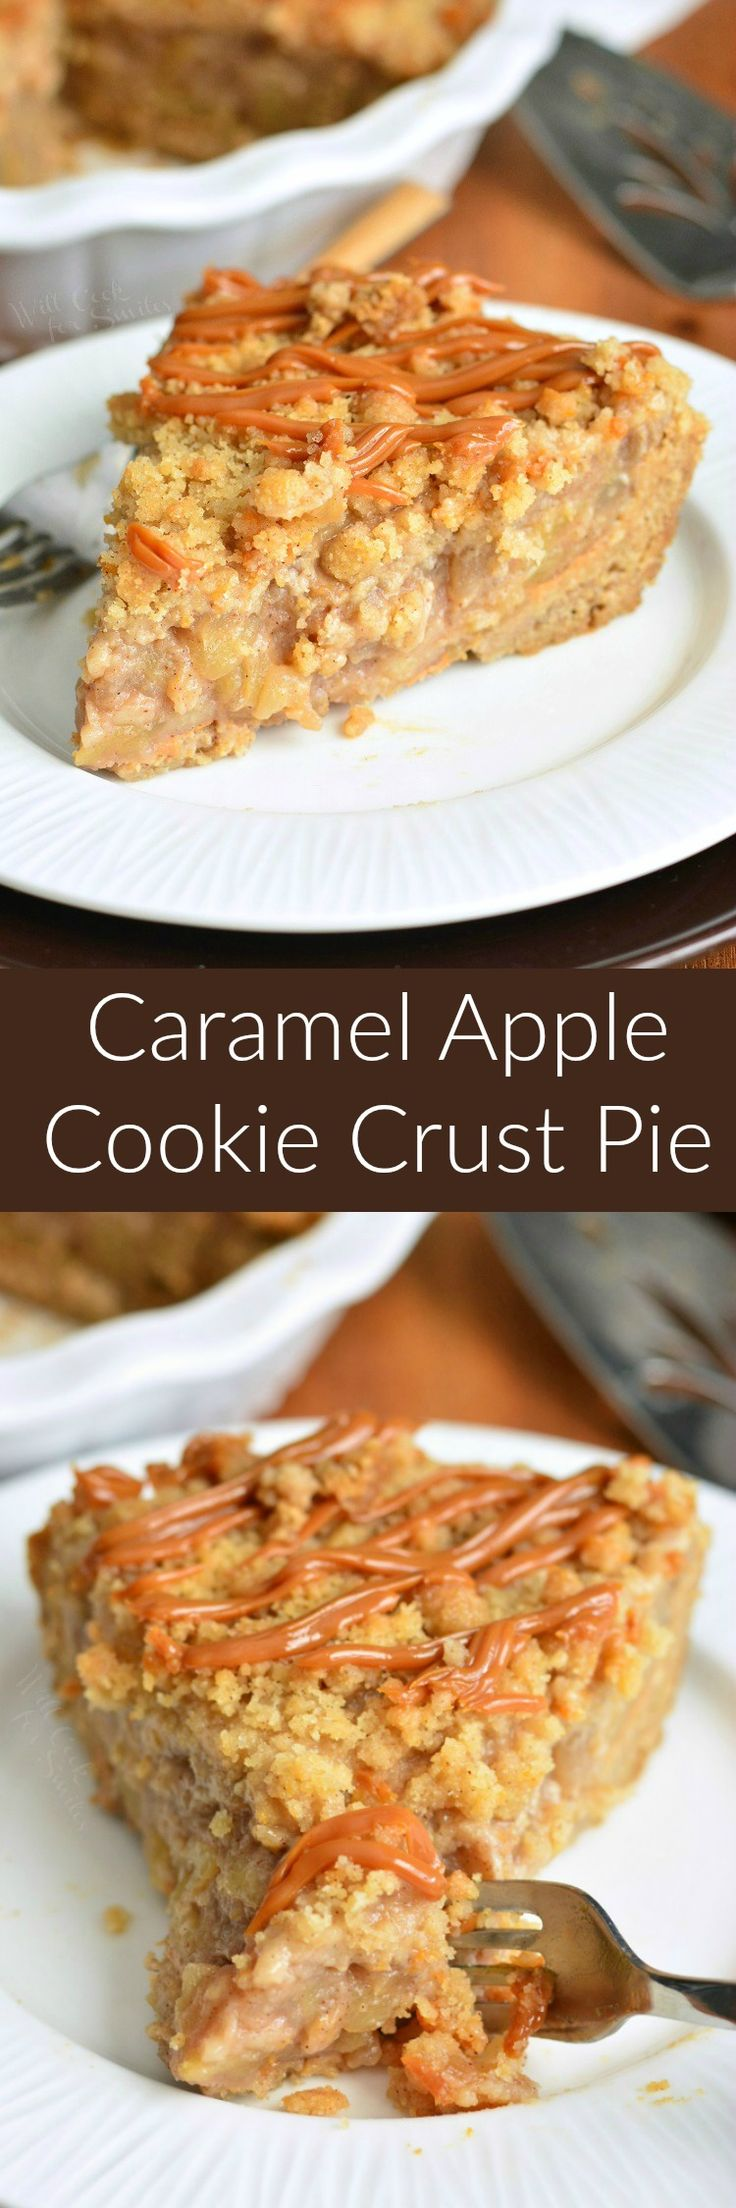 Caramel Apple Cookie Pie. This Caramel Apple Pie is pure heaven on a plate. The pie had a soft, sugar cookie crust, apple pie filling, sweet crumble, and layers of dulce de leche.